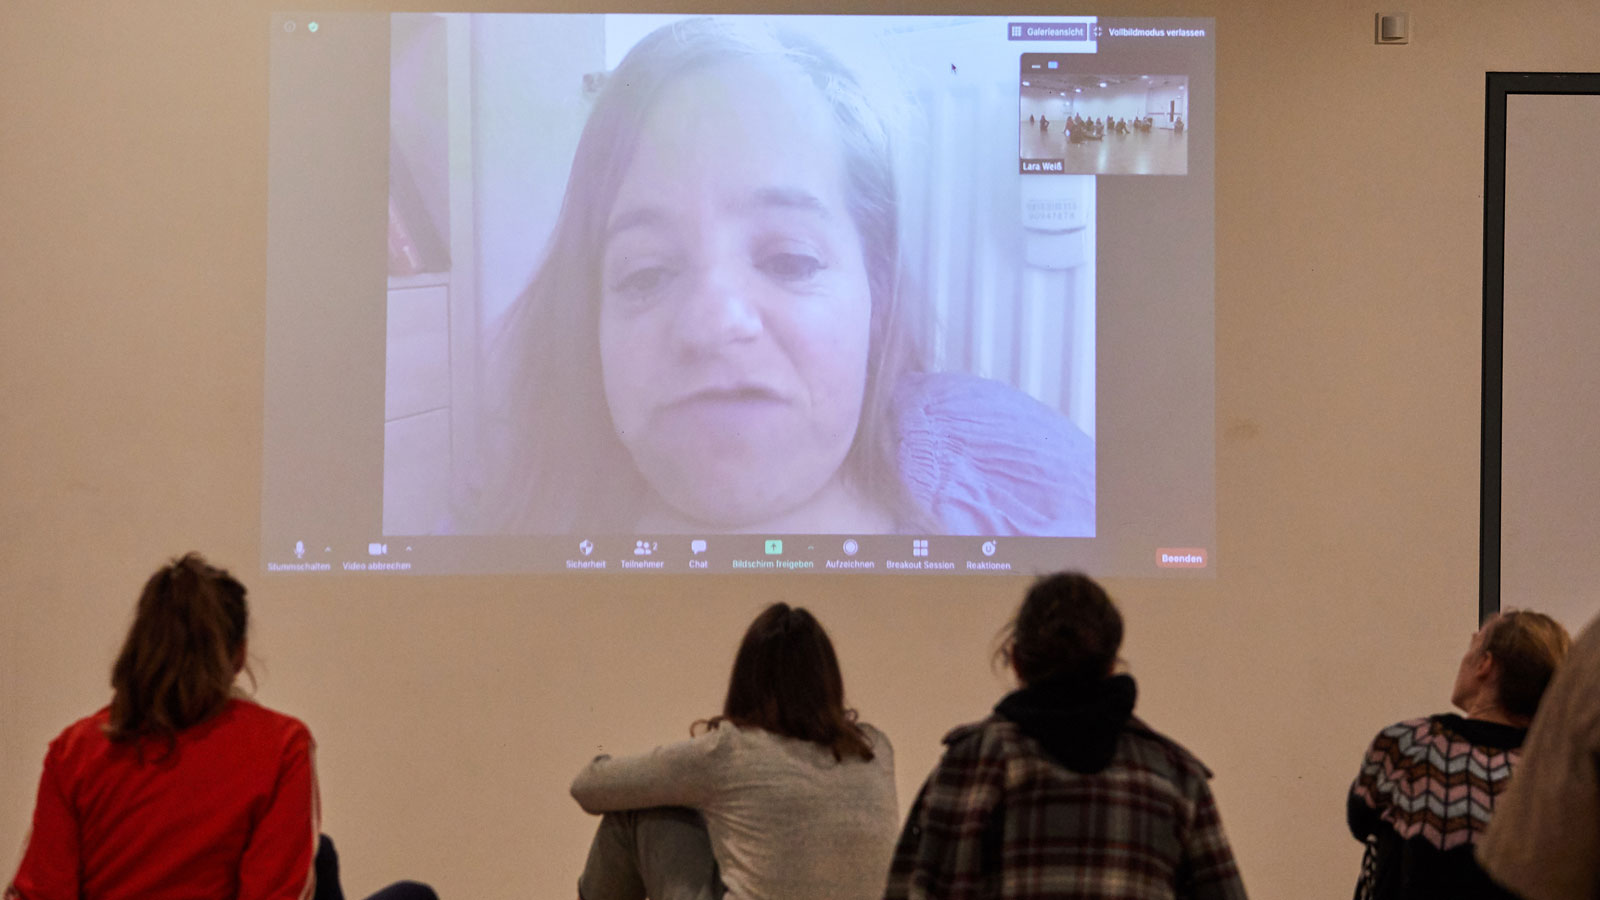 At the ALL IN Symposium. Jana Zöll is present at the workshop via Zoom. Her picture is projected onto the wall. The participants sit in front of it. ©Anna Spindelndreier